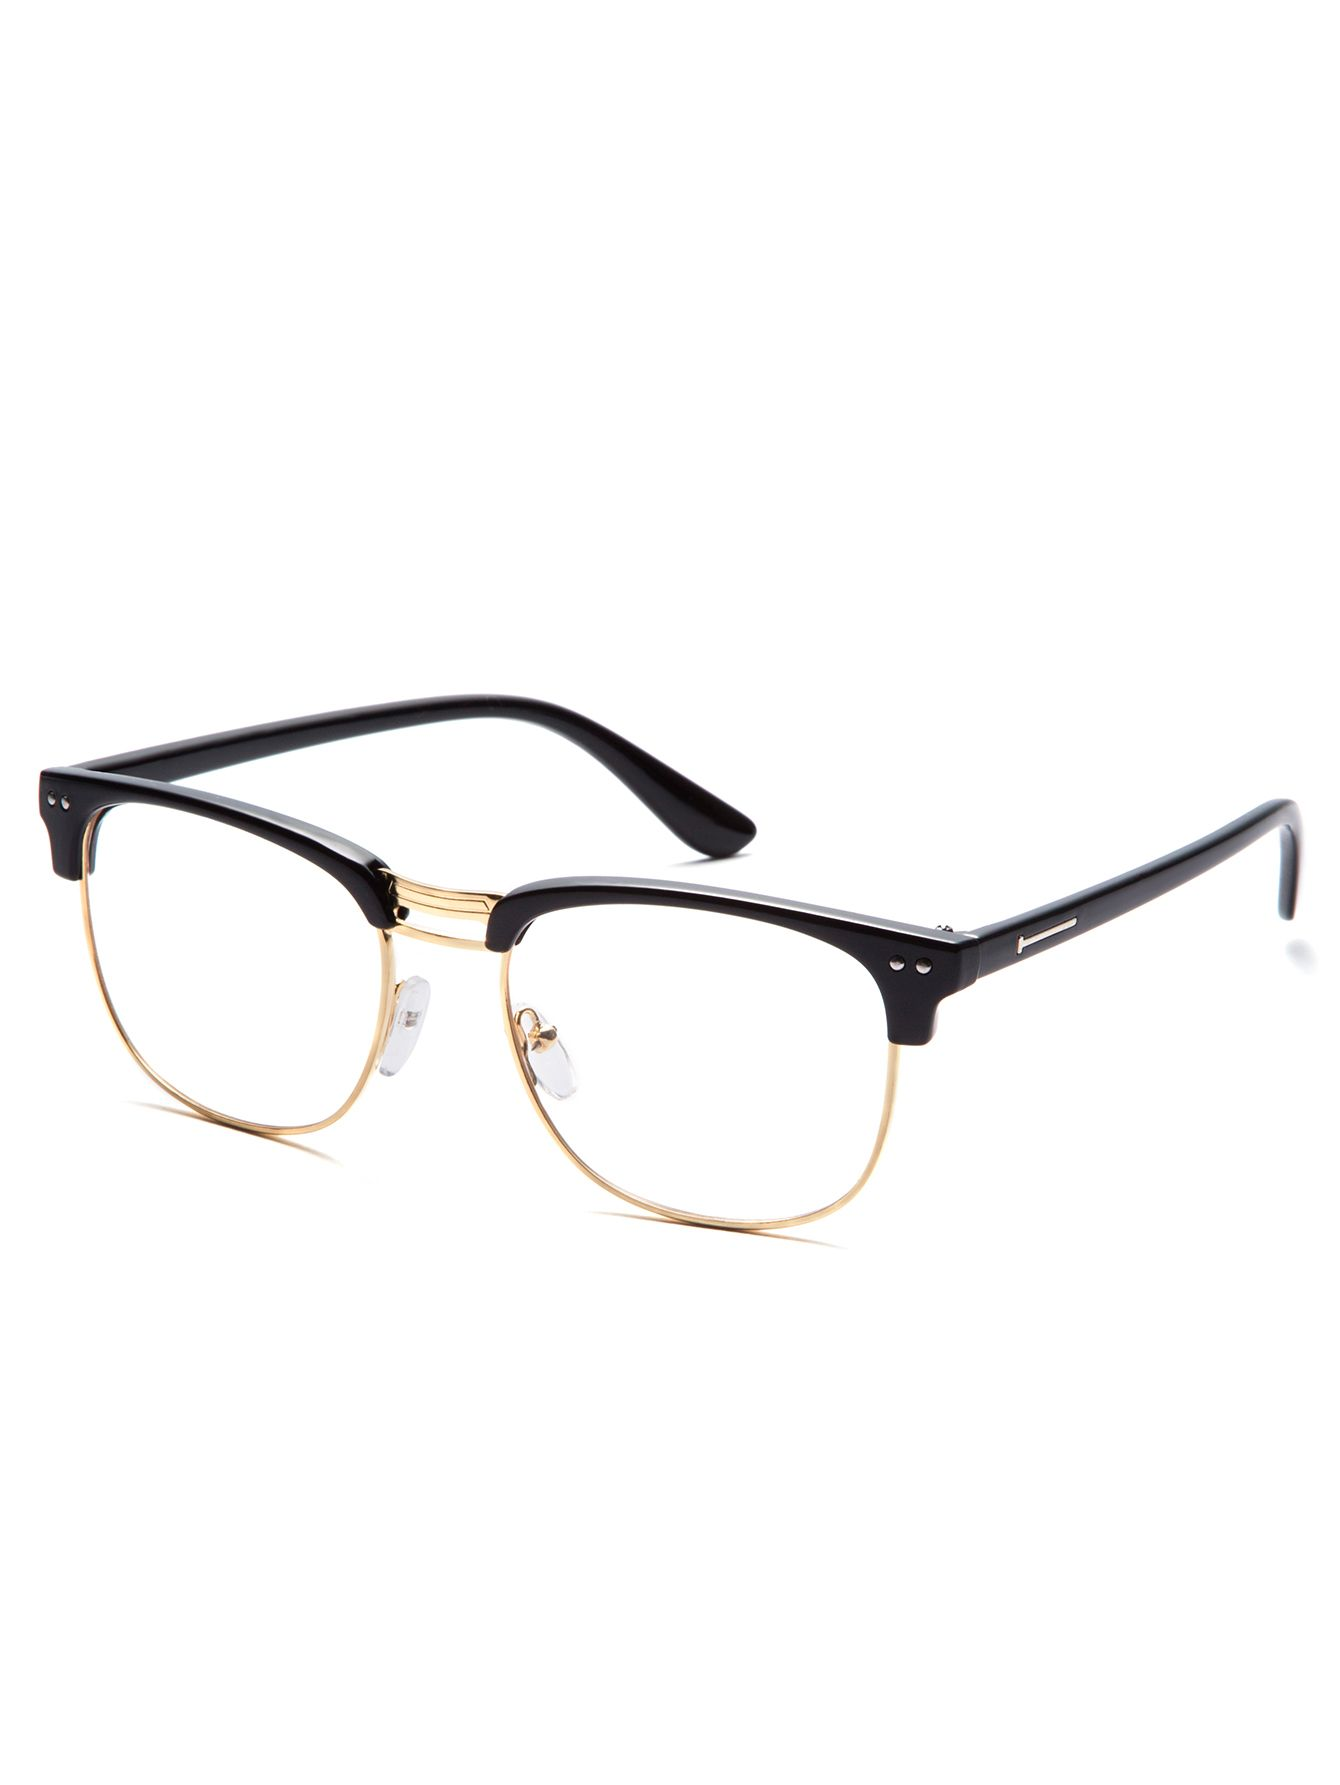 3a5237ecab Online shopping for Black Open Frame Gold Trim Glasses from a great  selection of women s fashion clothing   more at MakeMeChic.COM.